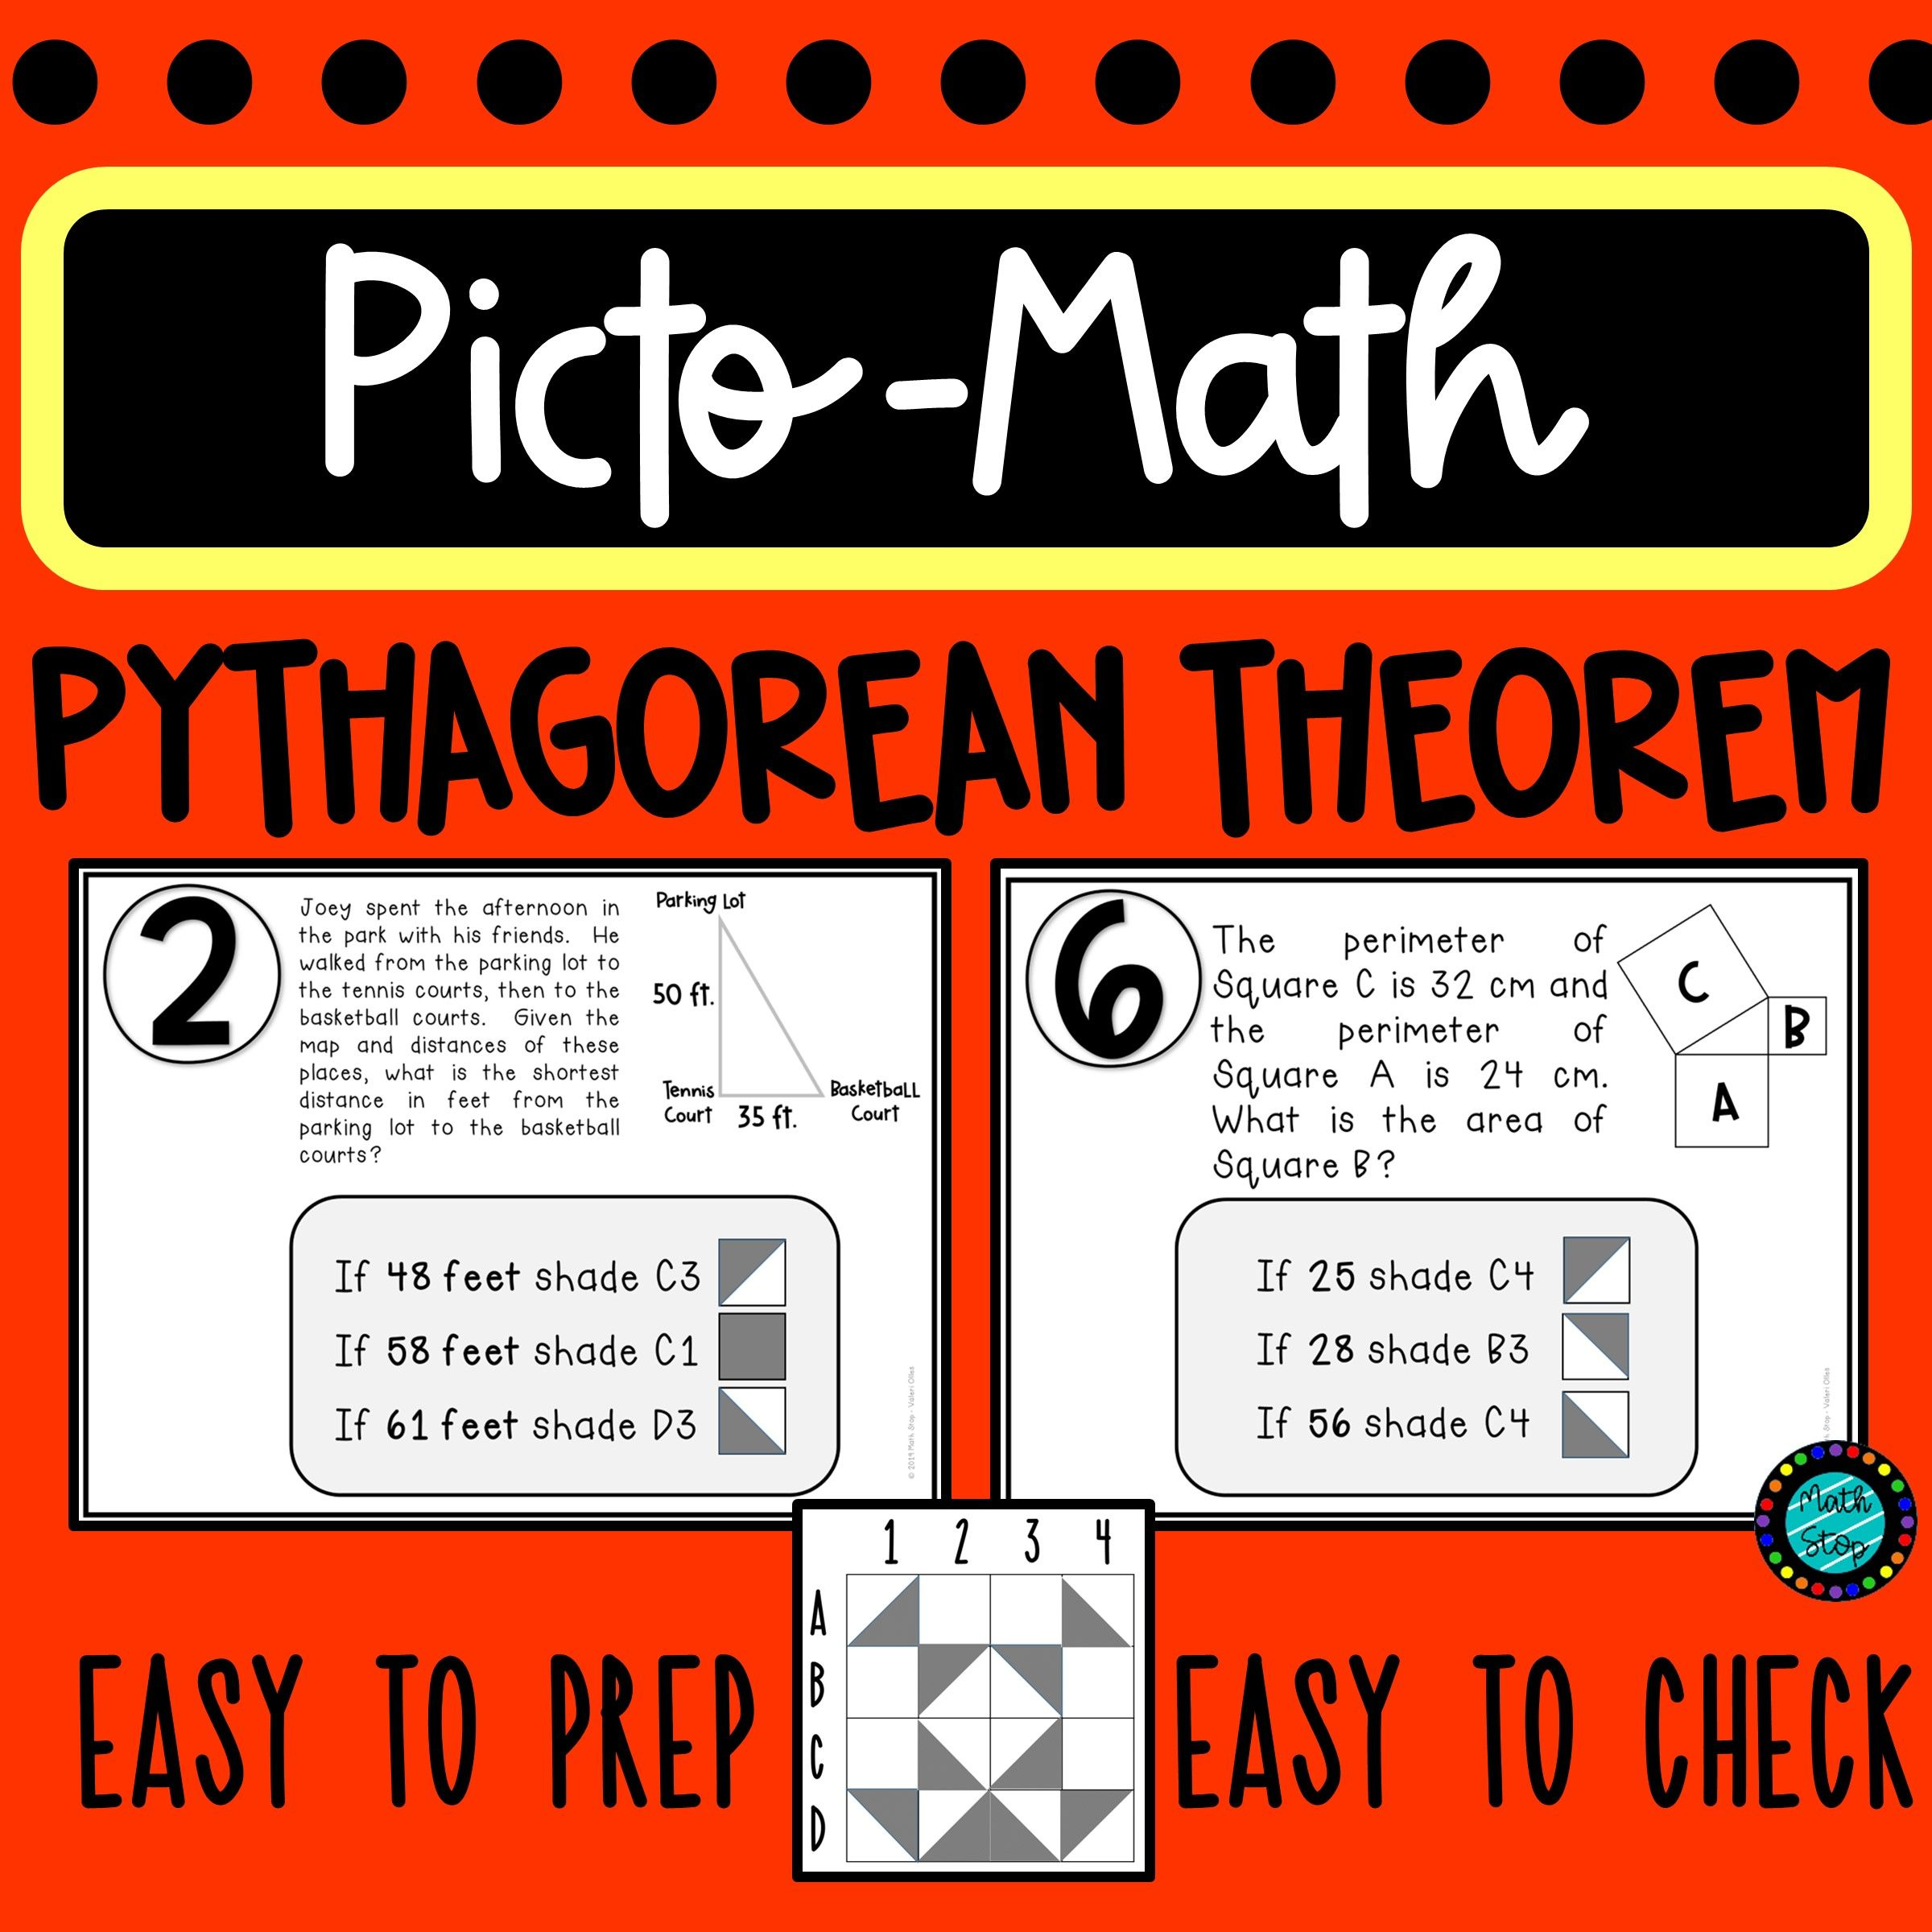 Pythagorean Theorem Pictomath Activity